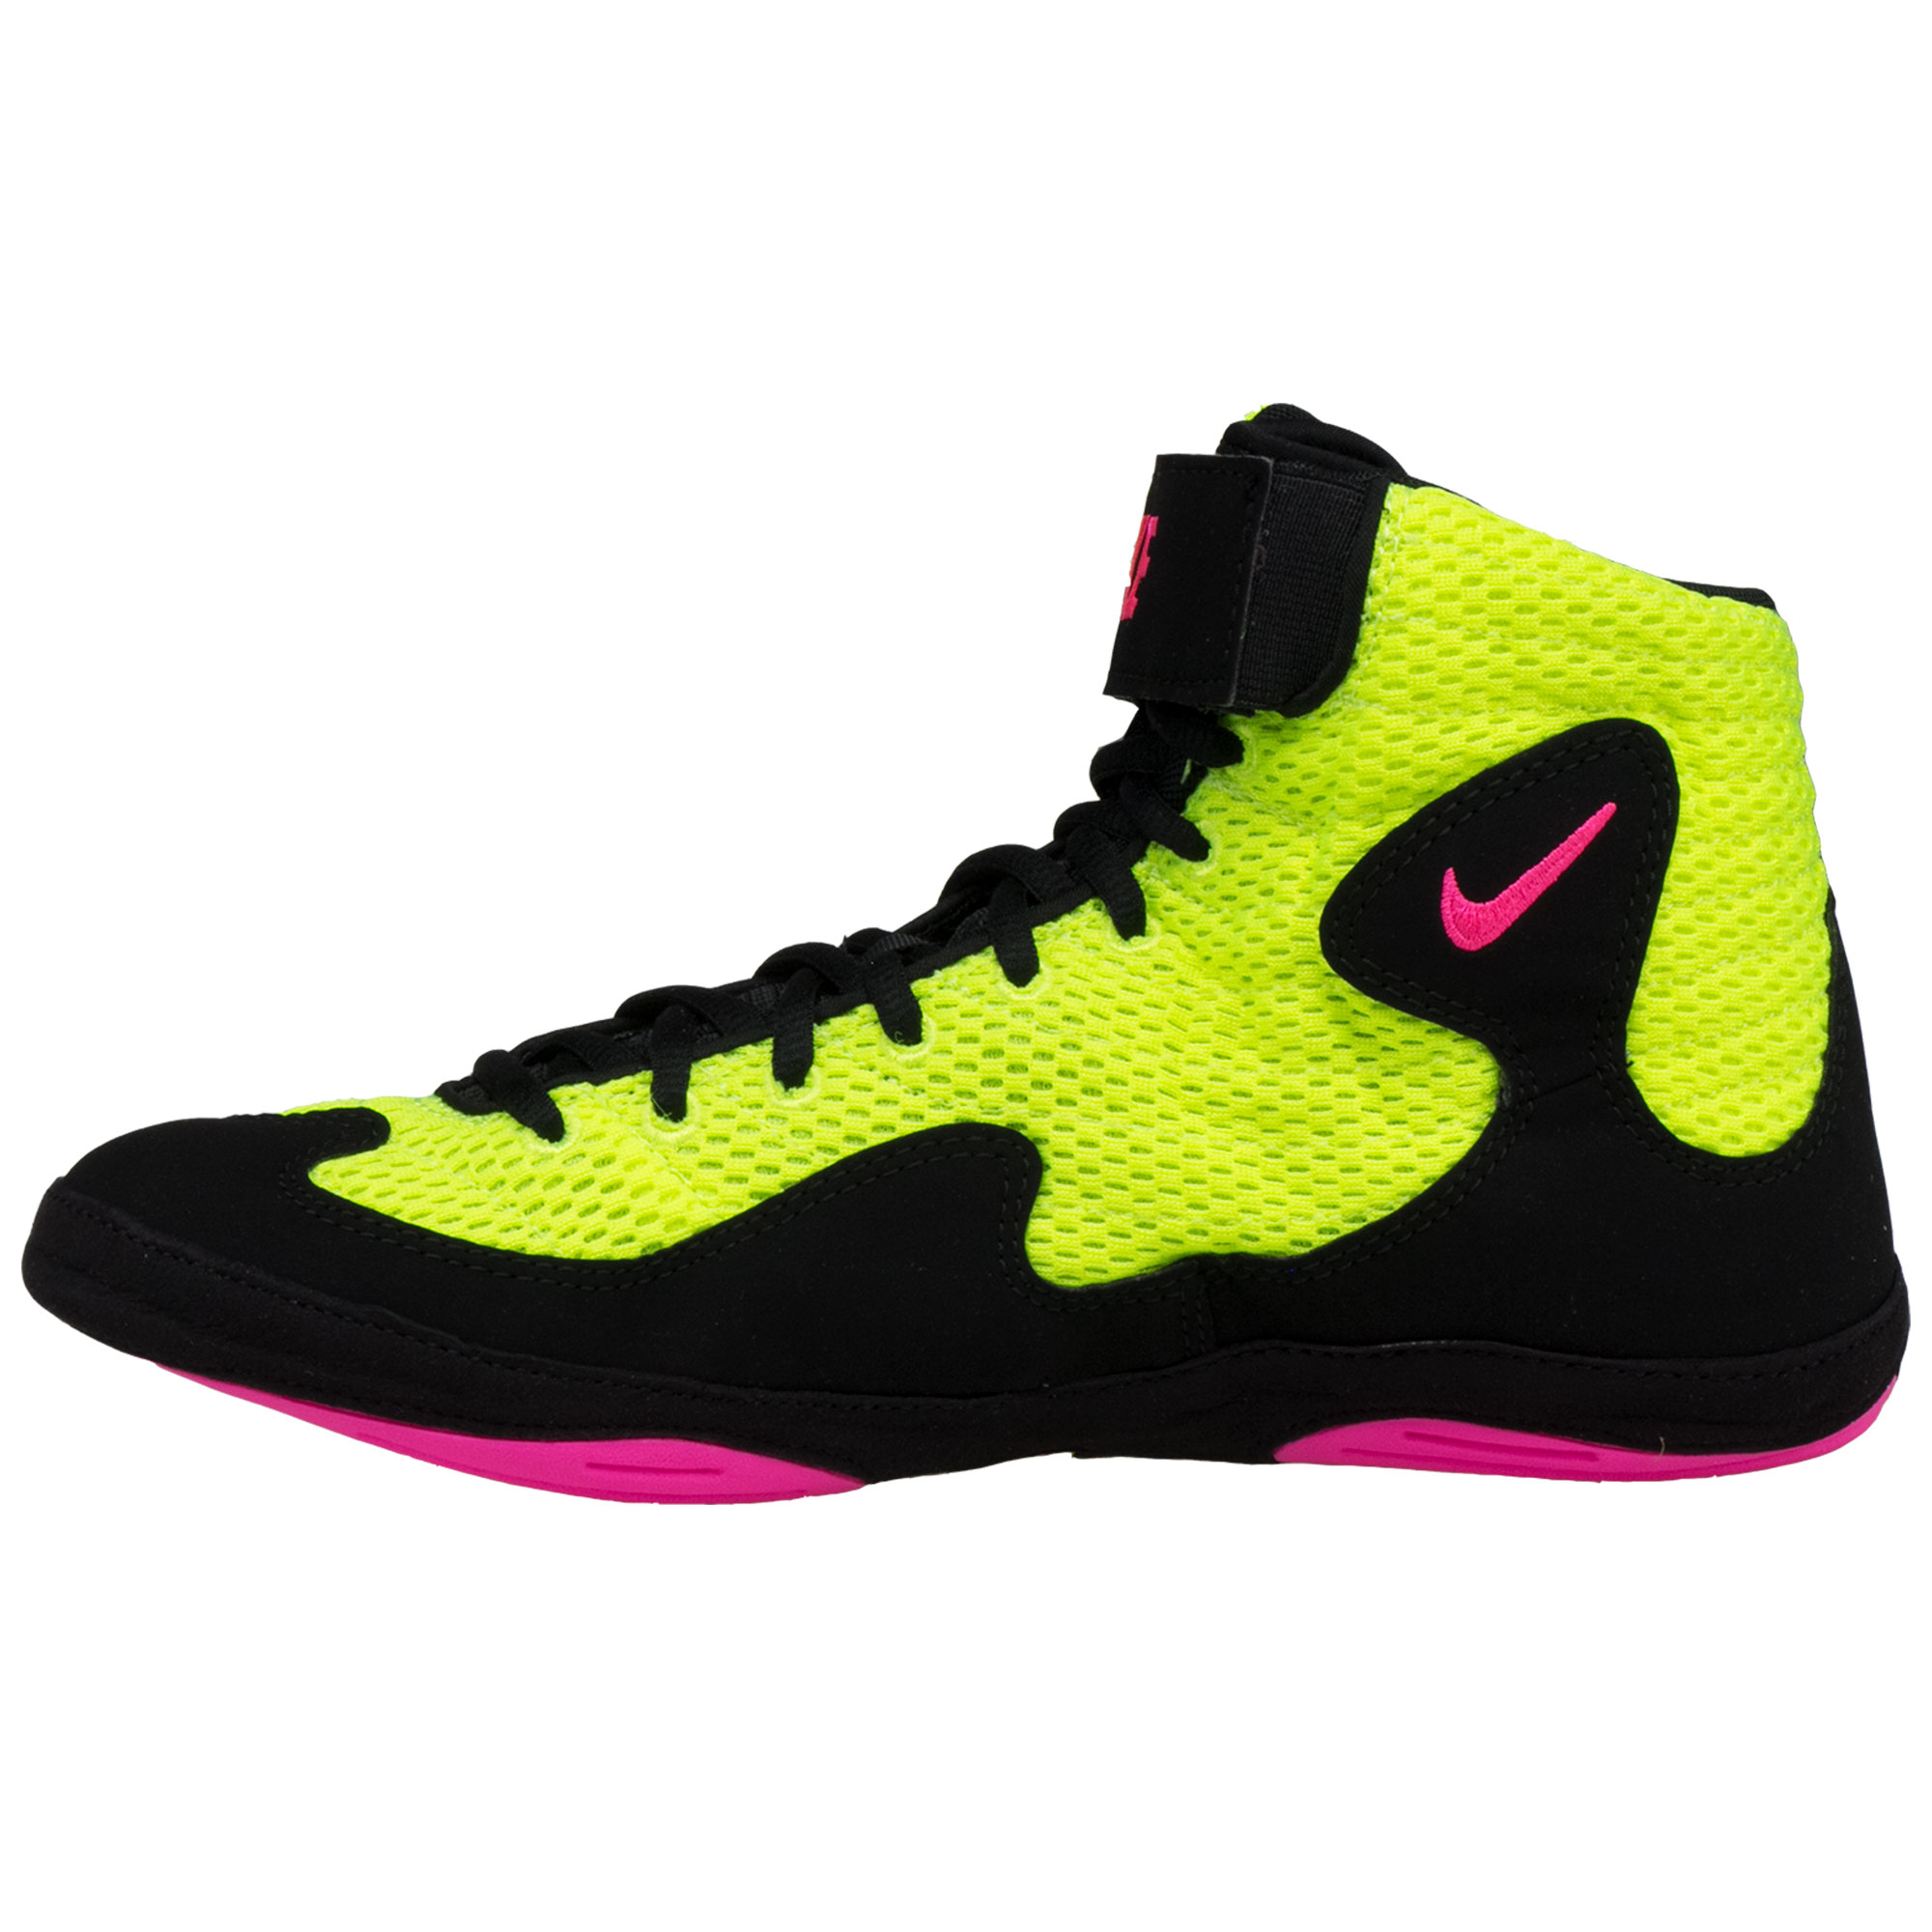 pretty nice 0ab80 ce54b ... Inflict 3 Unlimited Yellow Pink Black frontNike Inflict 3 Unlimited  Yellow Pink Black backNike Inflict 3 Unlimited Yellow Pink Black frontNike  Inflict 3 ...